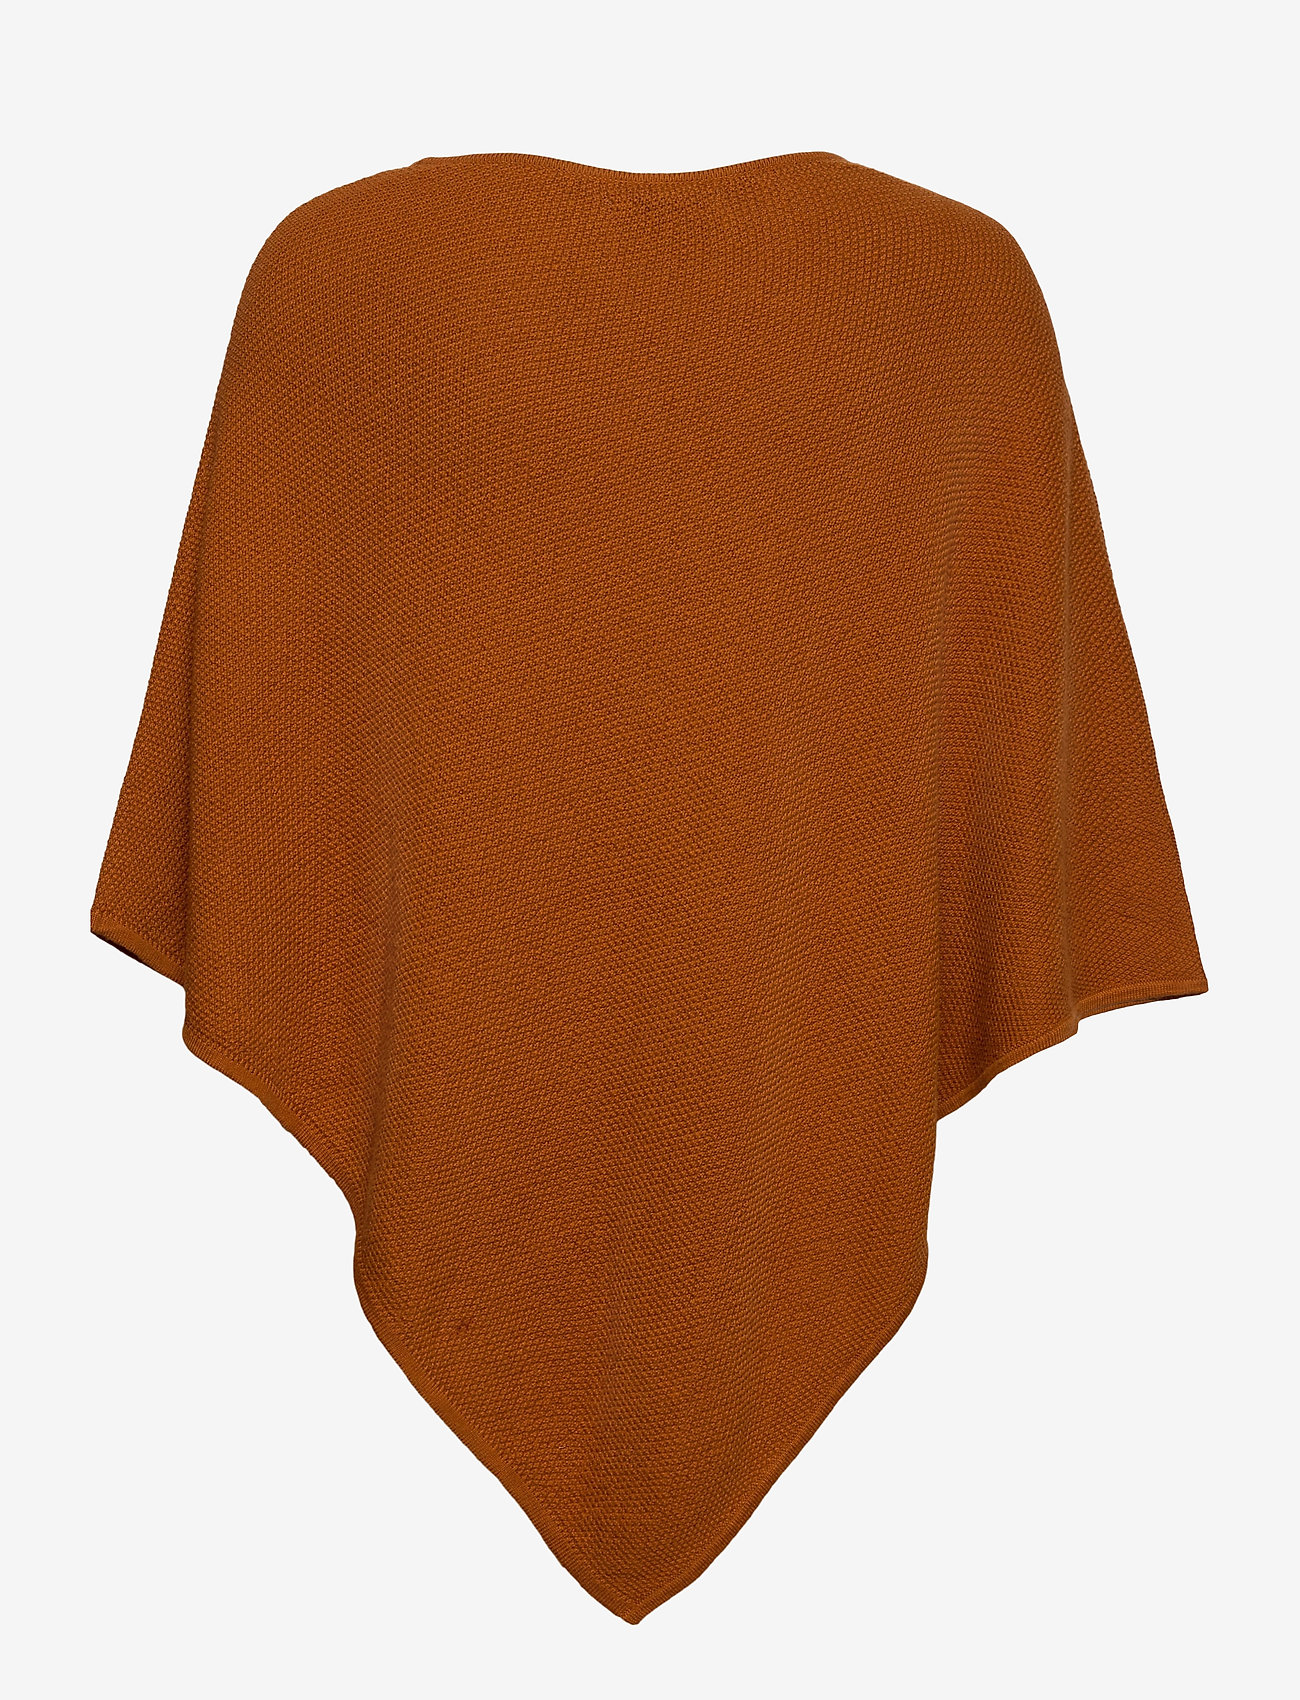 Esprit Accessories - Shawls/Scarves - ponchos & capes - rust brown - 1